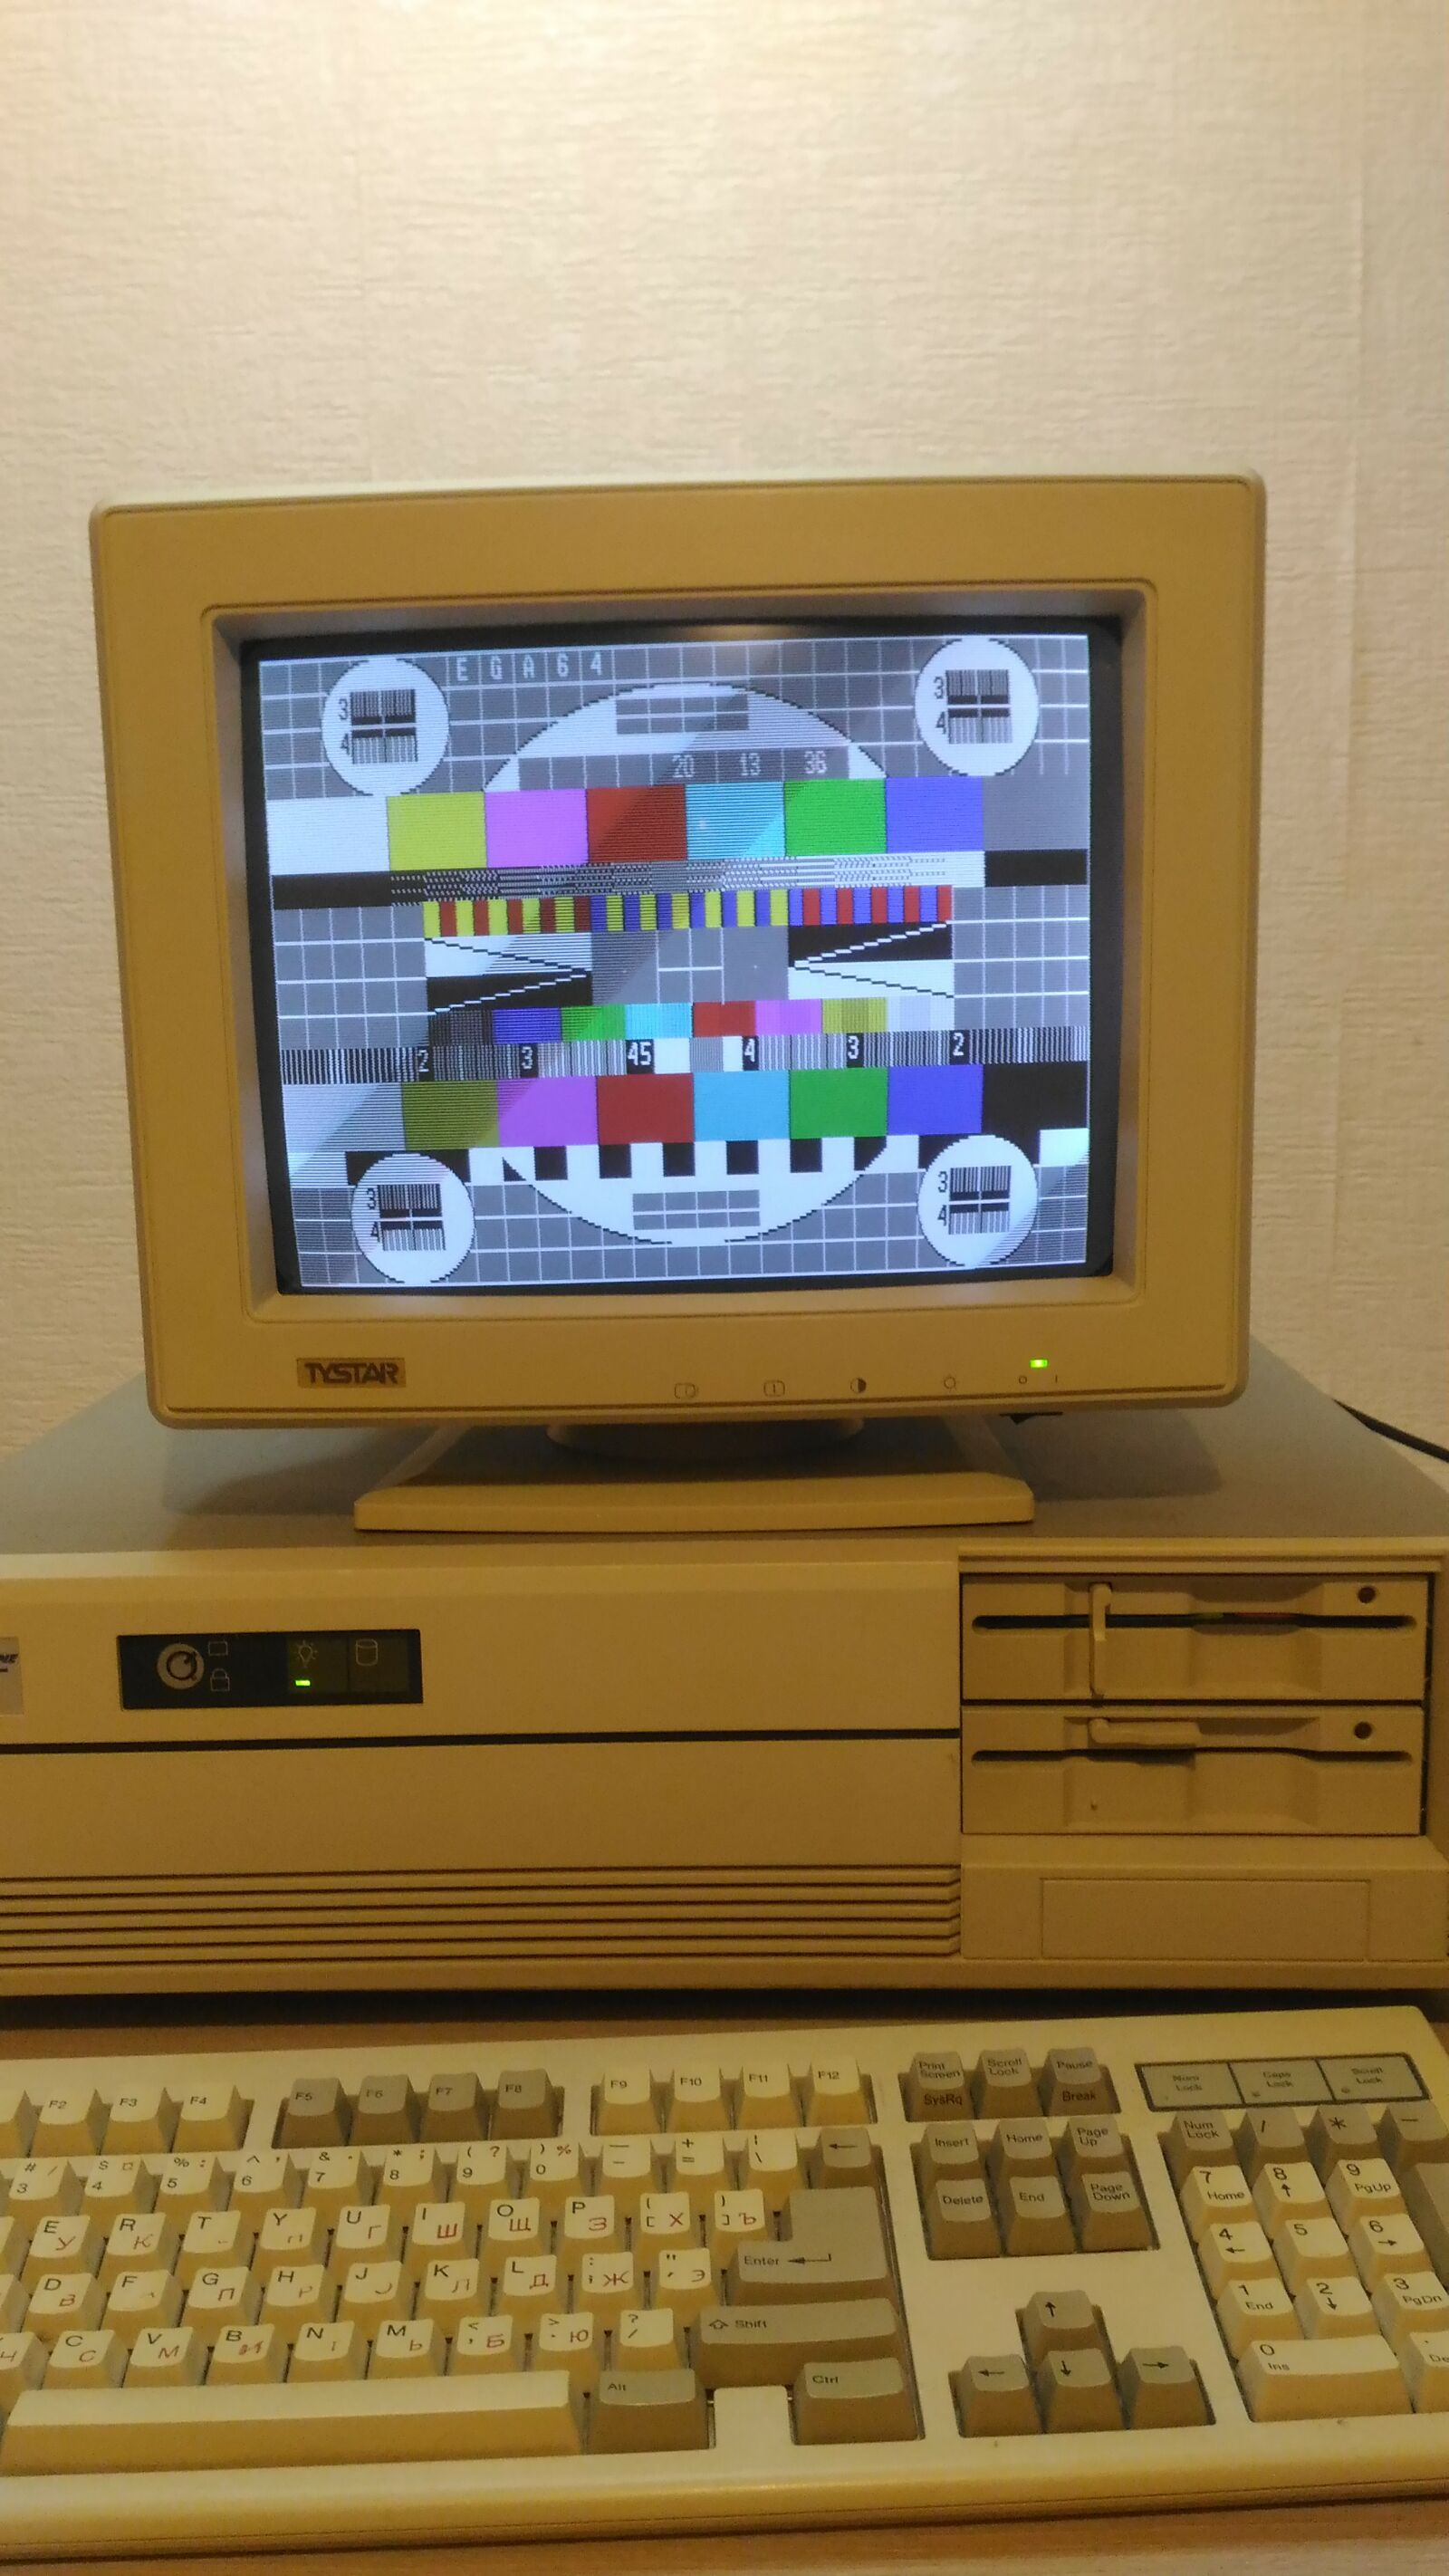 IBM PC-AT - 1